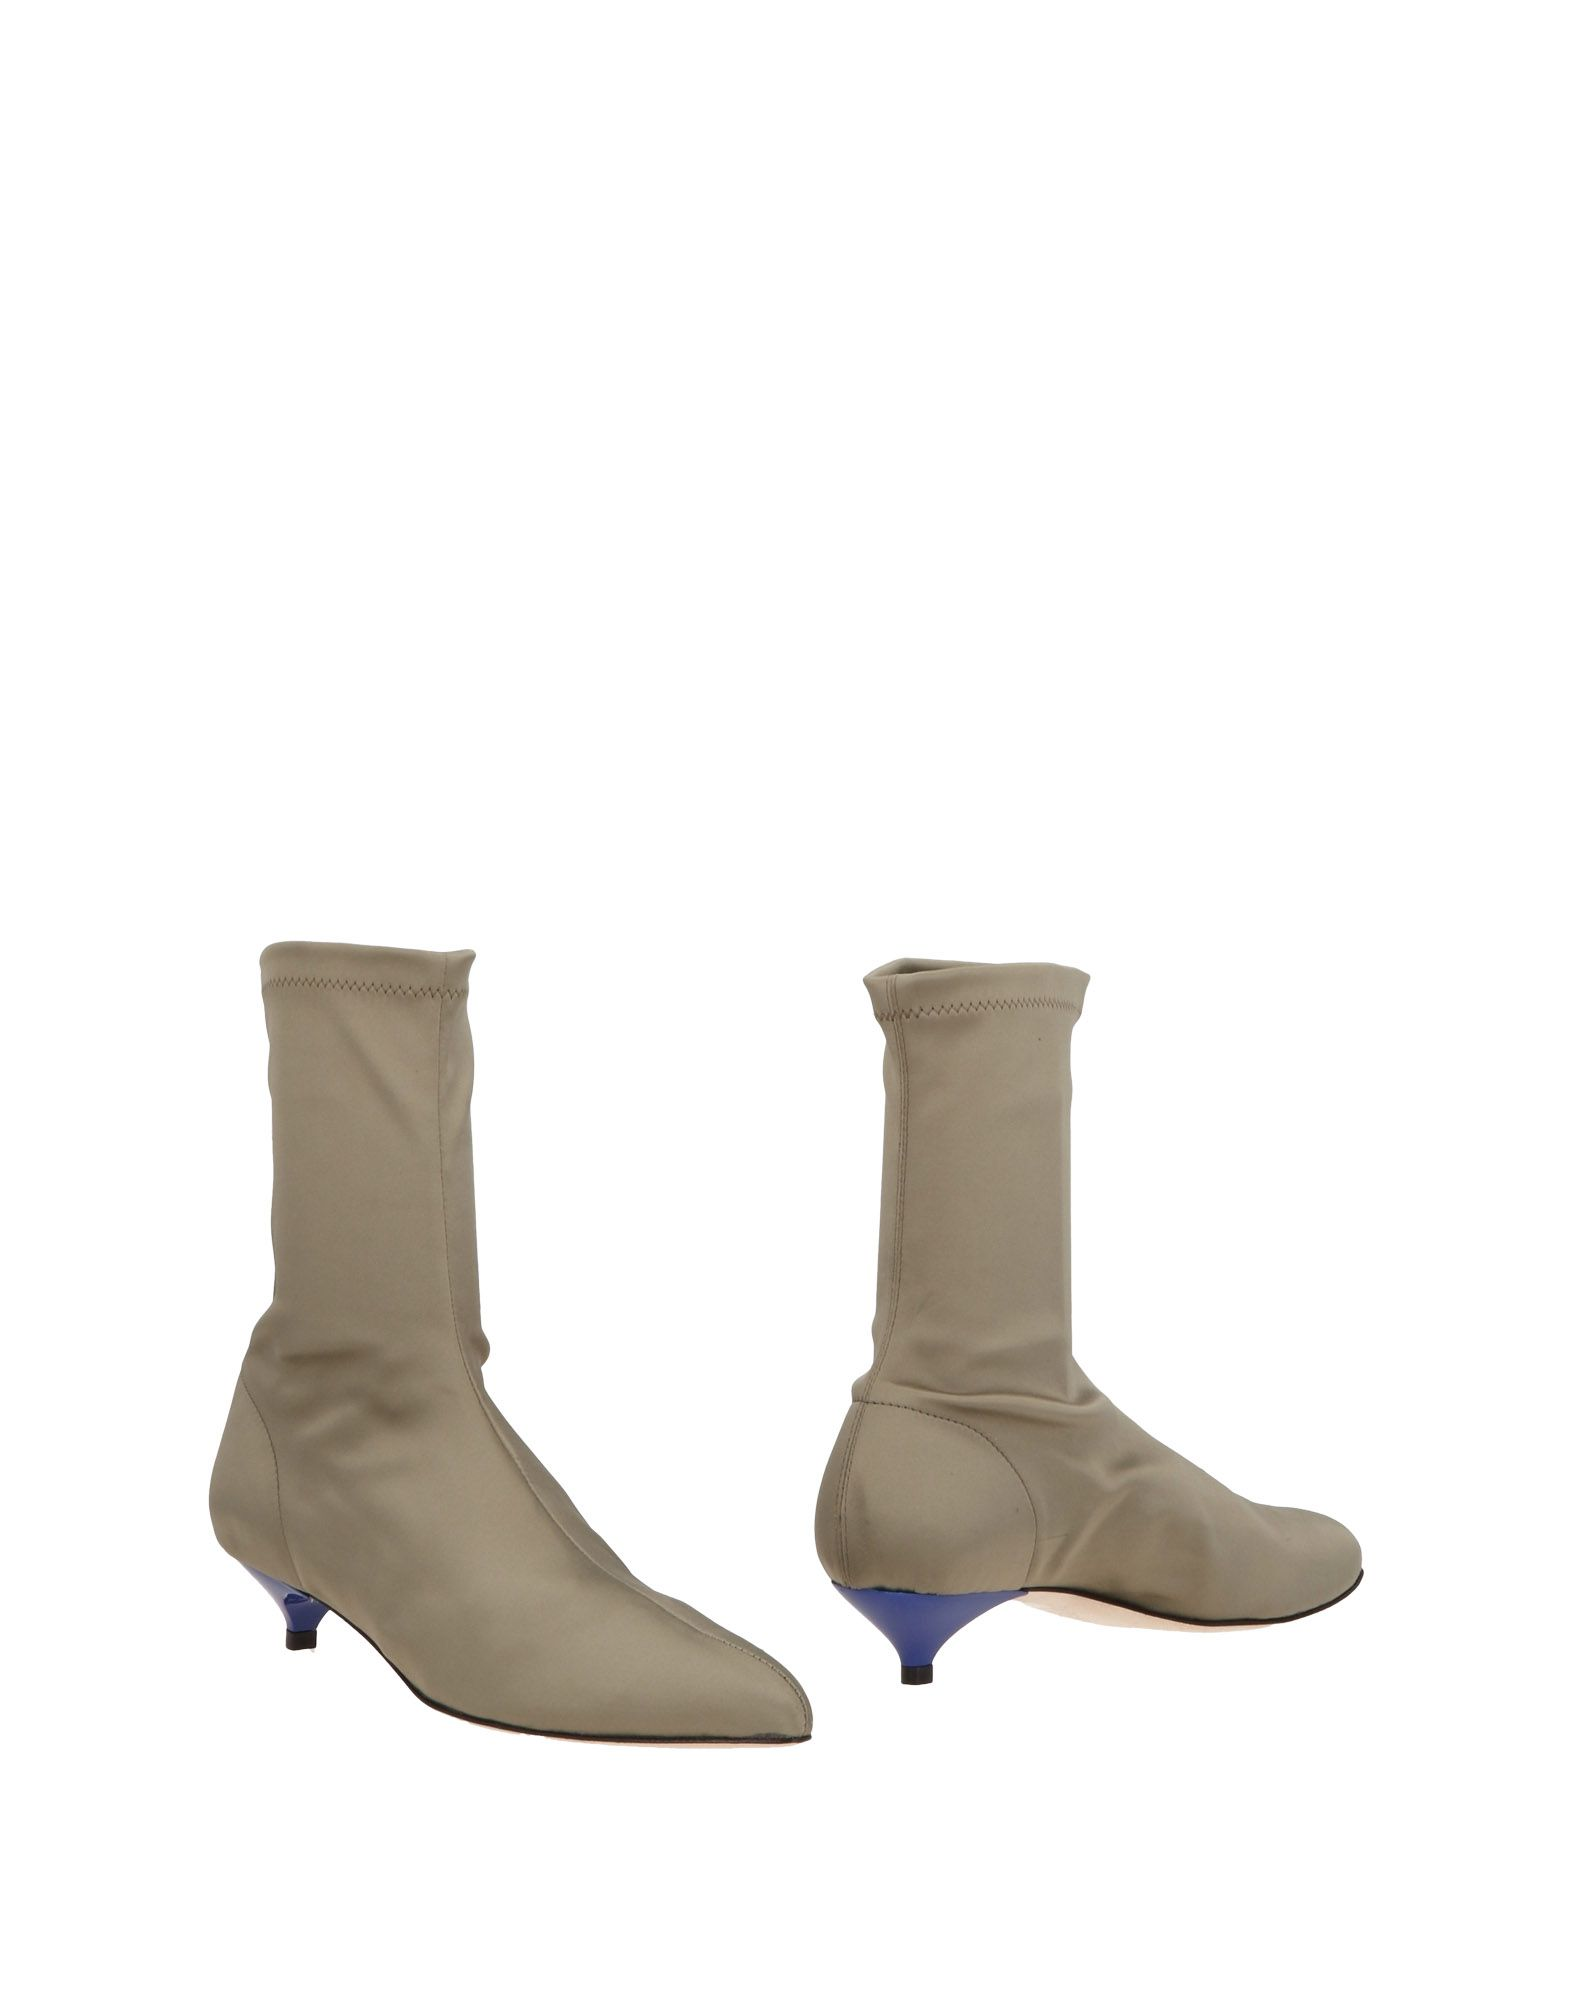 Ankle Boots in Military Green